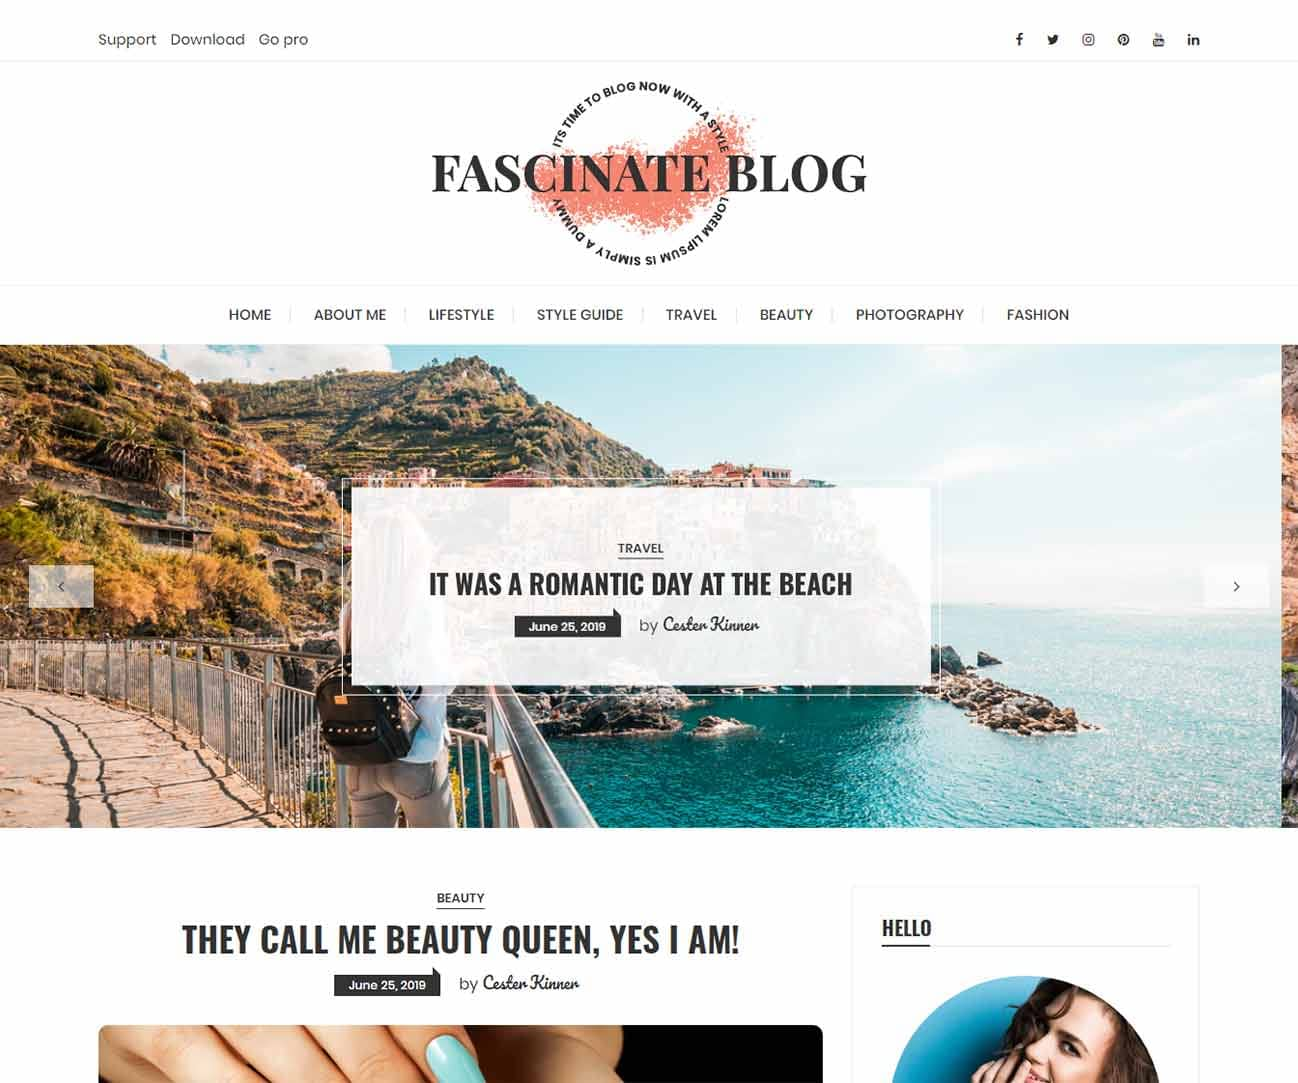 fascinate-blog-free-responsive-wordpress-theme